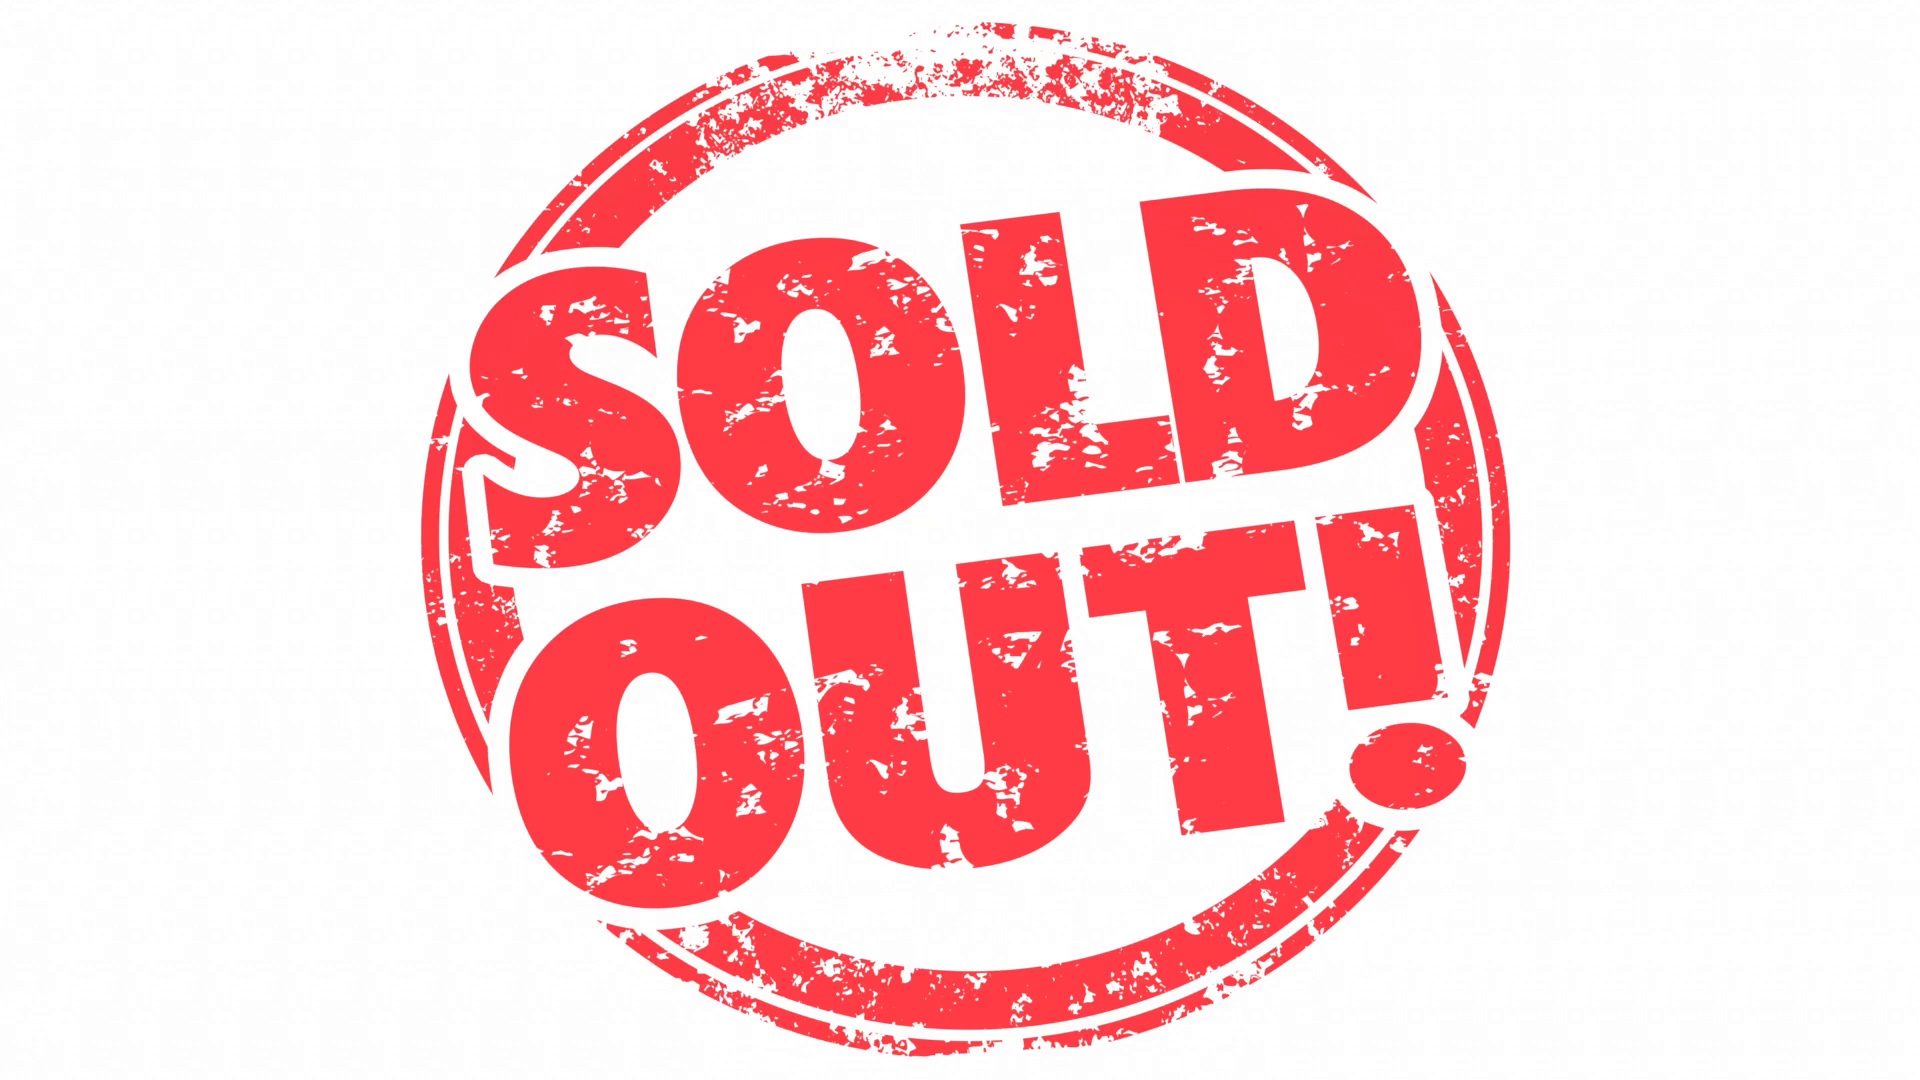 2018 Is Sold Out Ndash The Vintage 2019